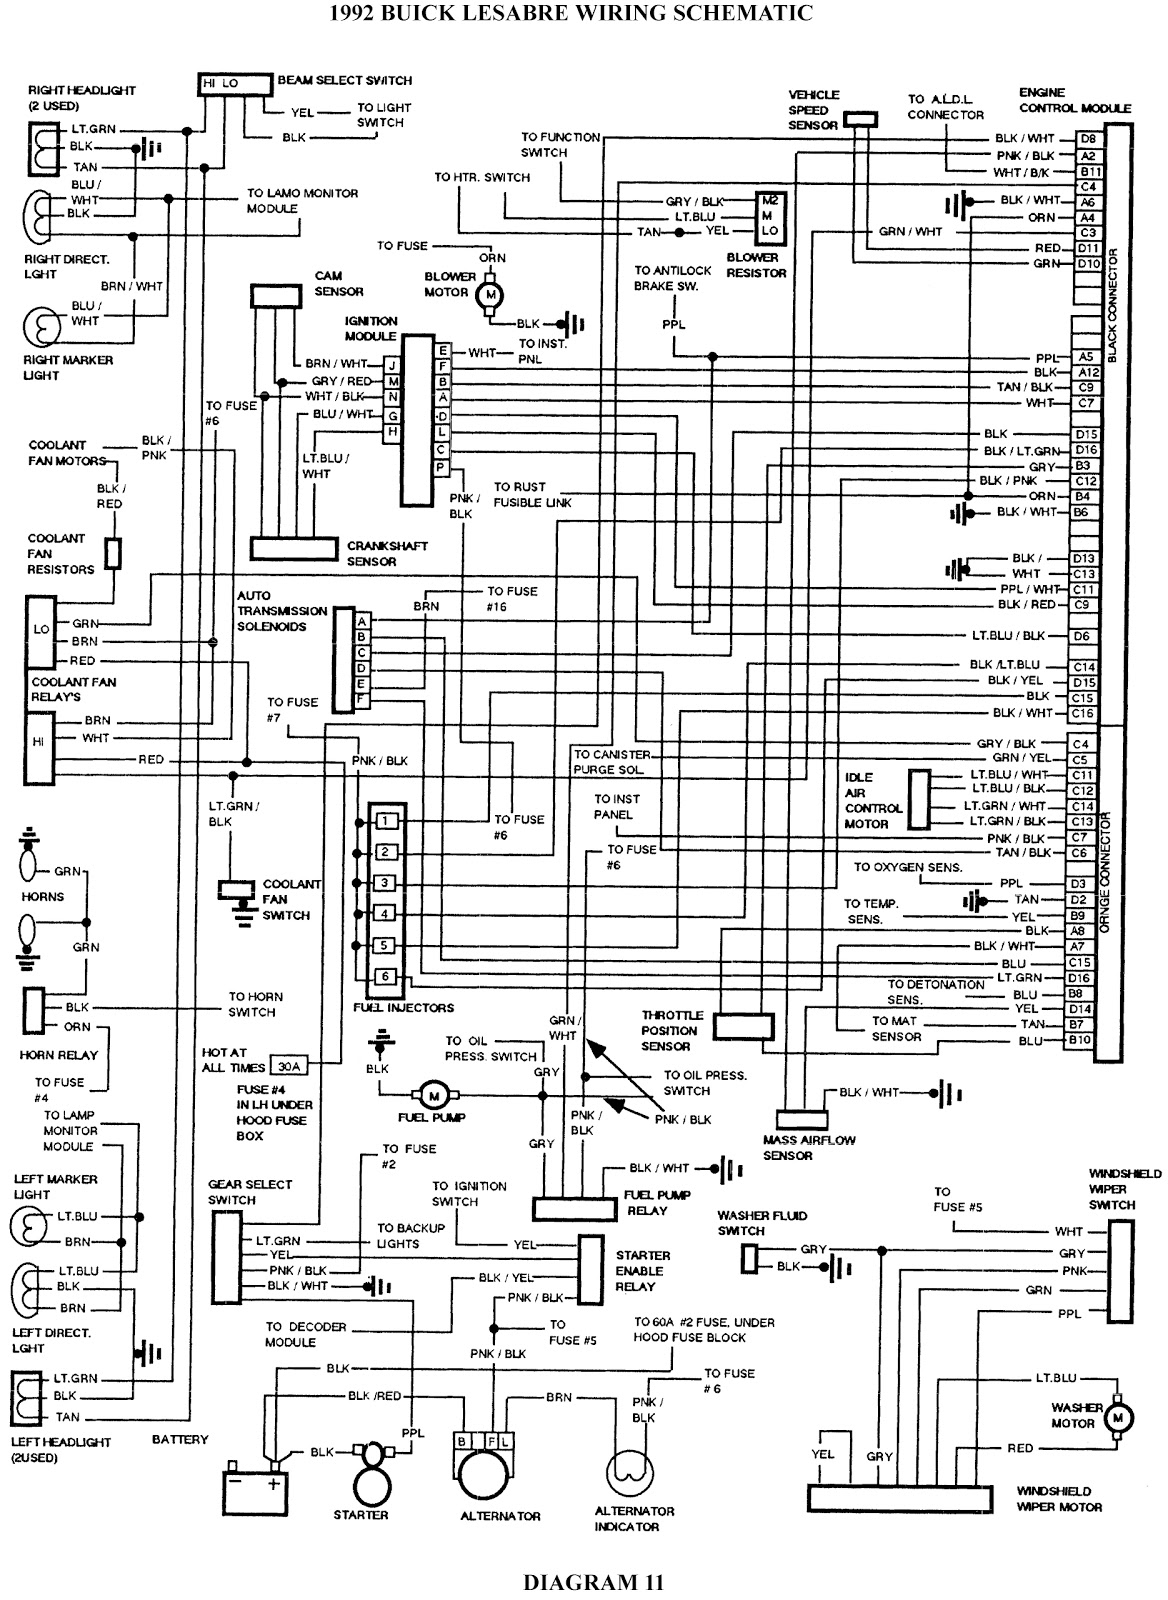 1993 buick roadmaster fuse diagram schema wiring diagrams 1991 chrysler imperial wiring diagram 1991 buick roadmaster wiring diagram [ 1168 x 1600 Pixel ]